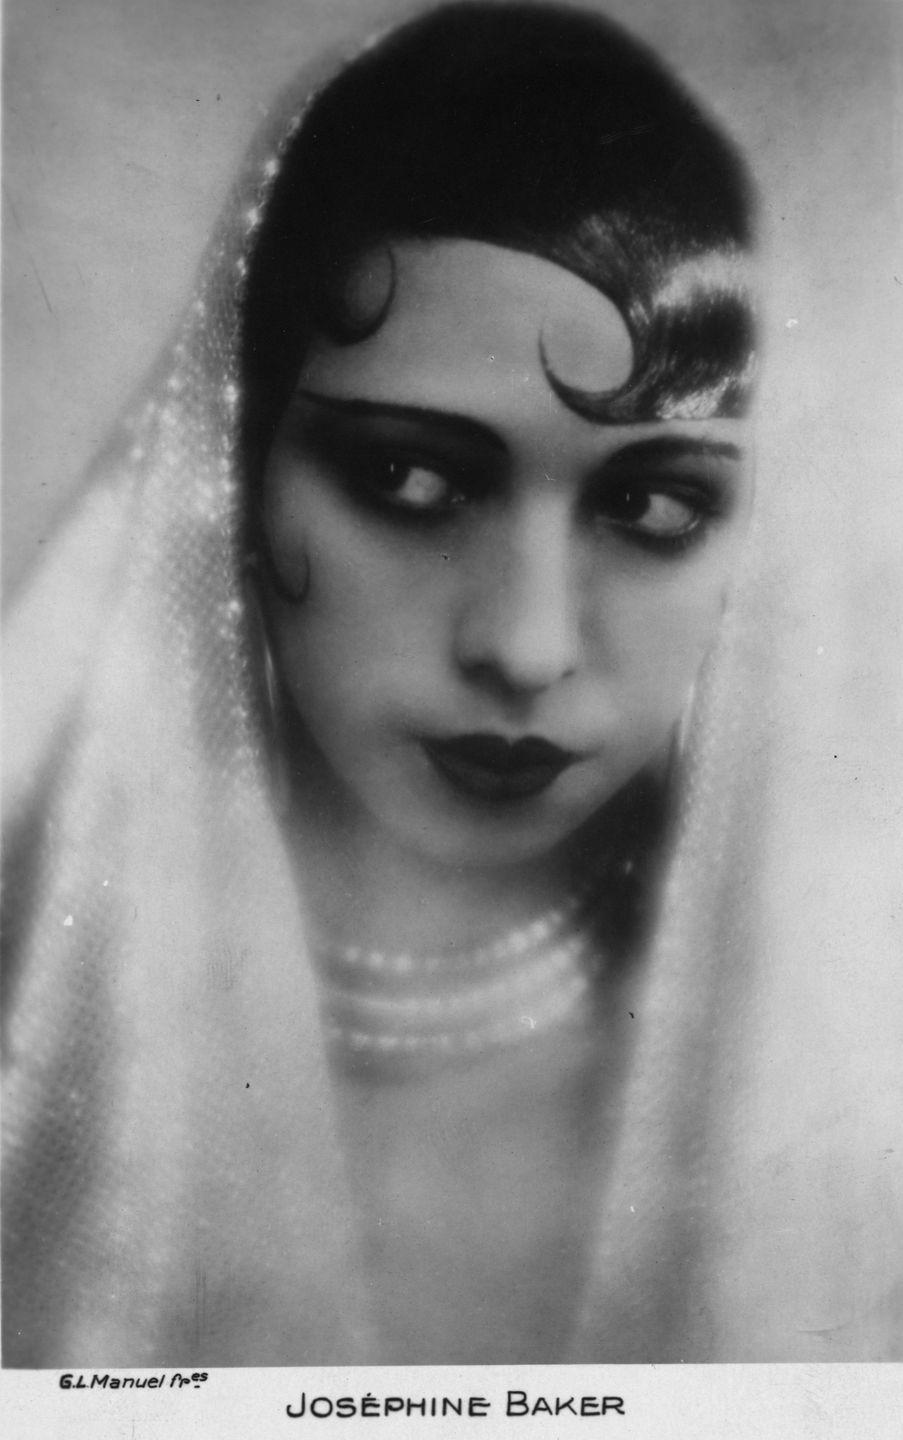 """<p>While touring the country at 15, Baker came across William Howard Baker in Philadelphia. The two married and <a href=""""https://www.stltoday.com/entertainment/books-and-literature/josephine-baker-a-diva-who-embraced-the-world/article_2f021e35-4c81-5388-a537-b4dcee3f3503.html"""" rel=""""nofollow noopener"""" target=""""_blank"""" data-ylk=""""slk:the young dancer took his name"""" class=""""link rapid-noclick-resp"""">the young dancer took his name</a>, officially becoming Josephine Baker.</p>"""